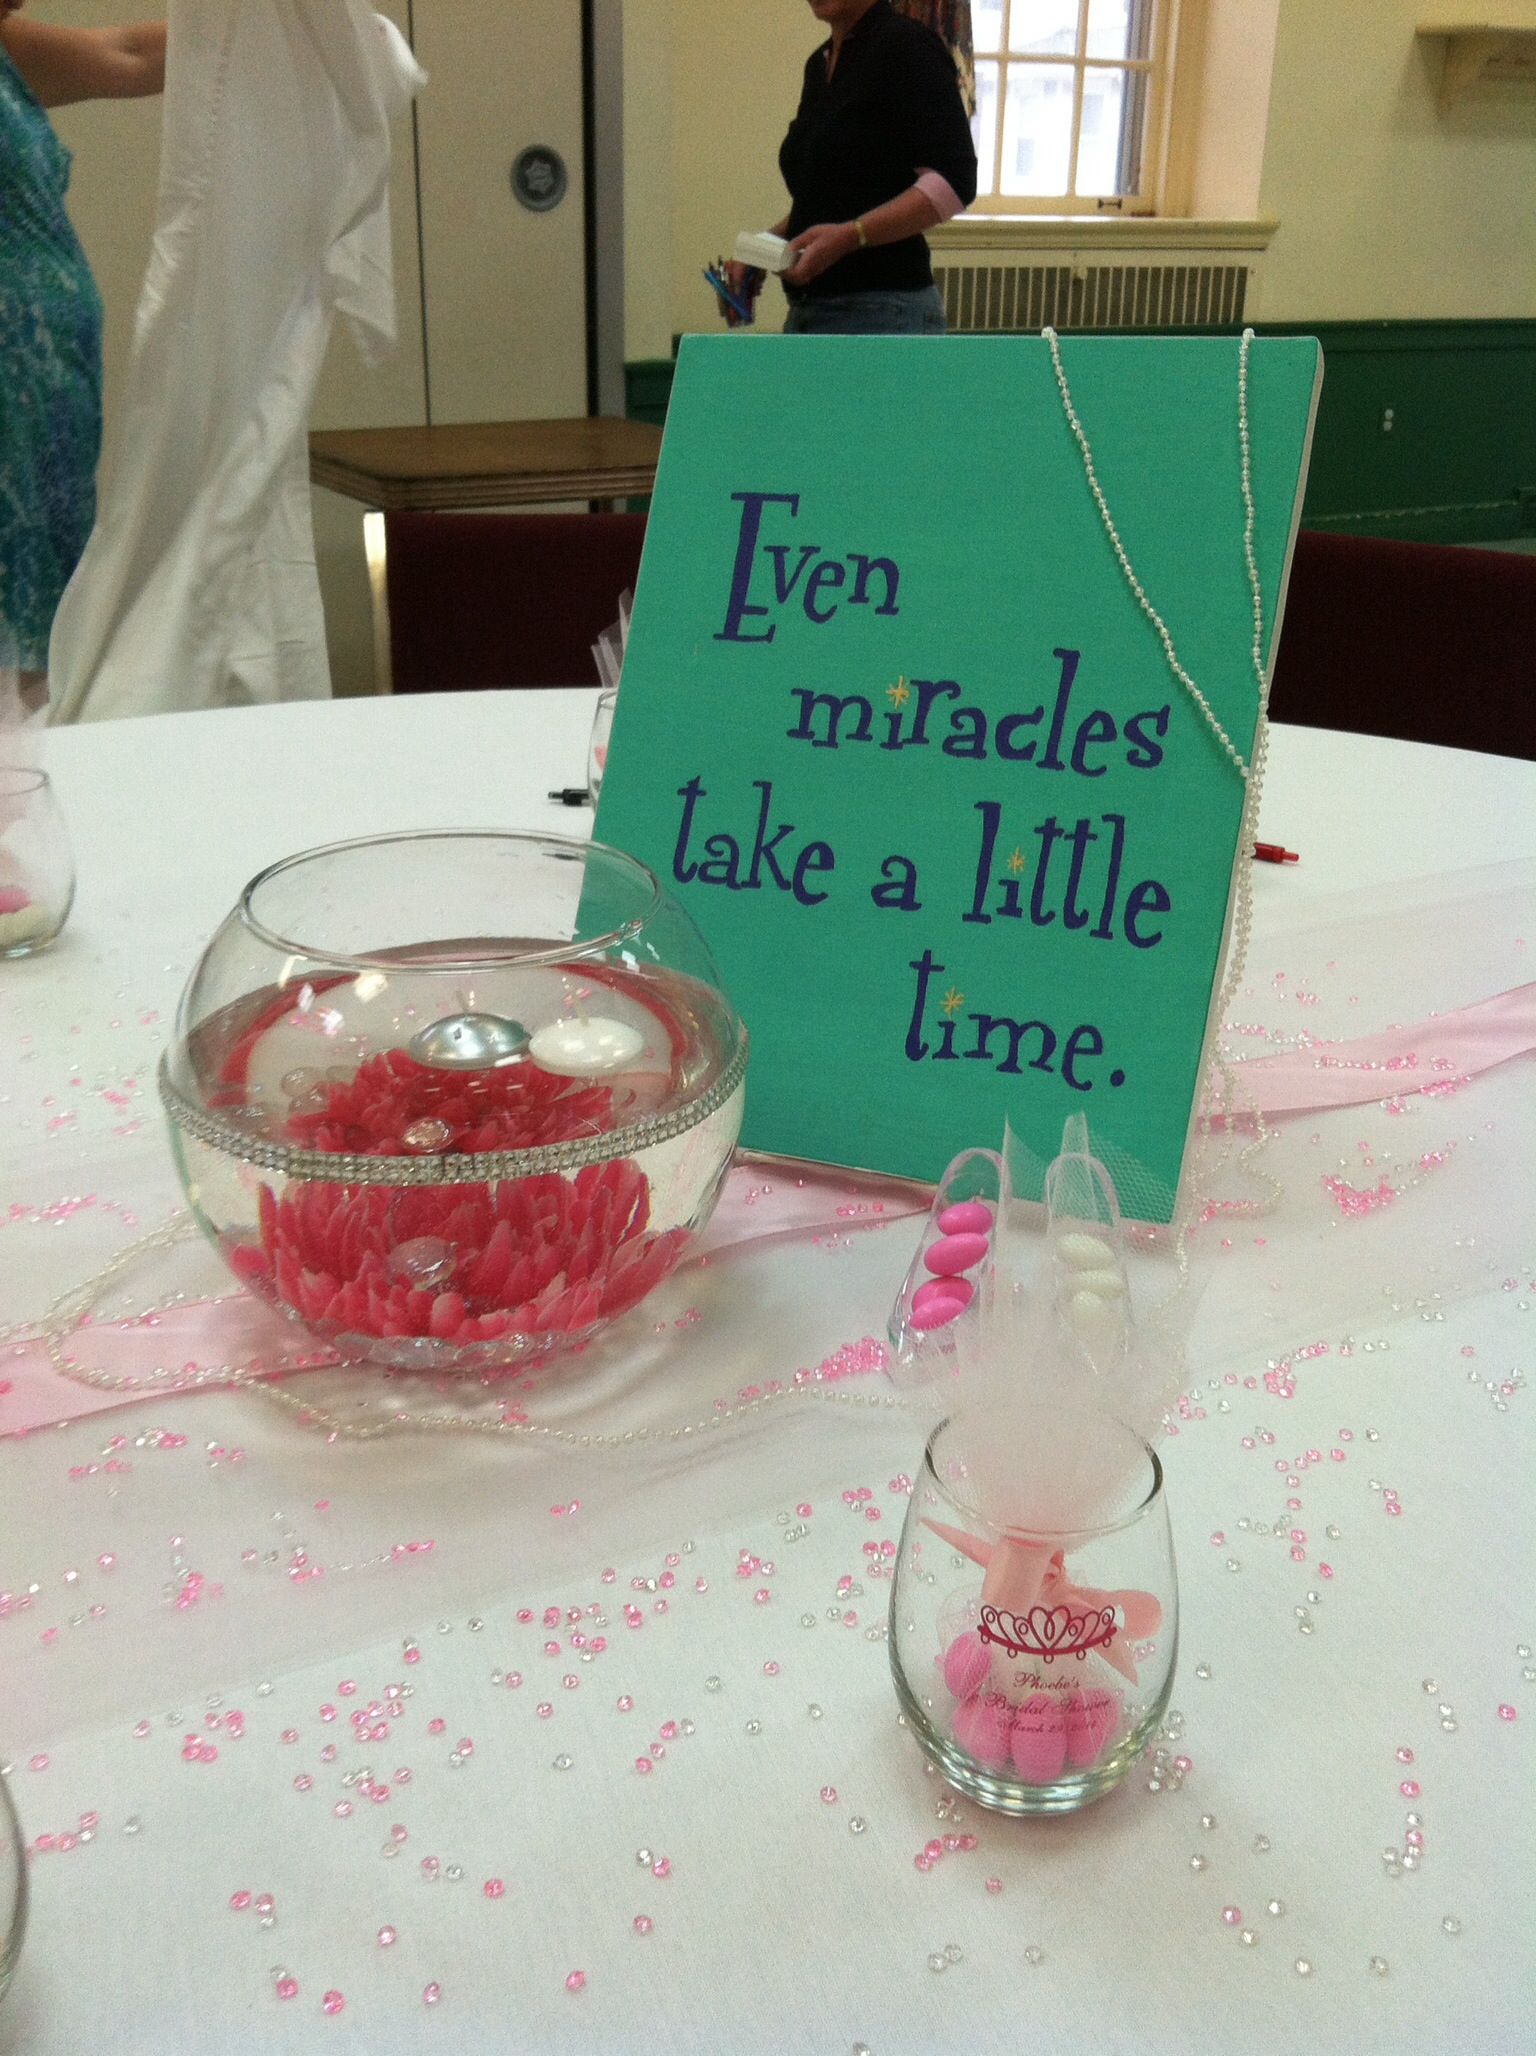 cinderella themed bridal shower table decorations canvas painted with cinderella quotes favors small wine glasses with brides name and shower date